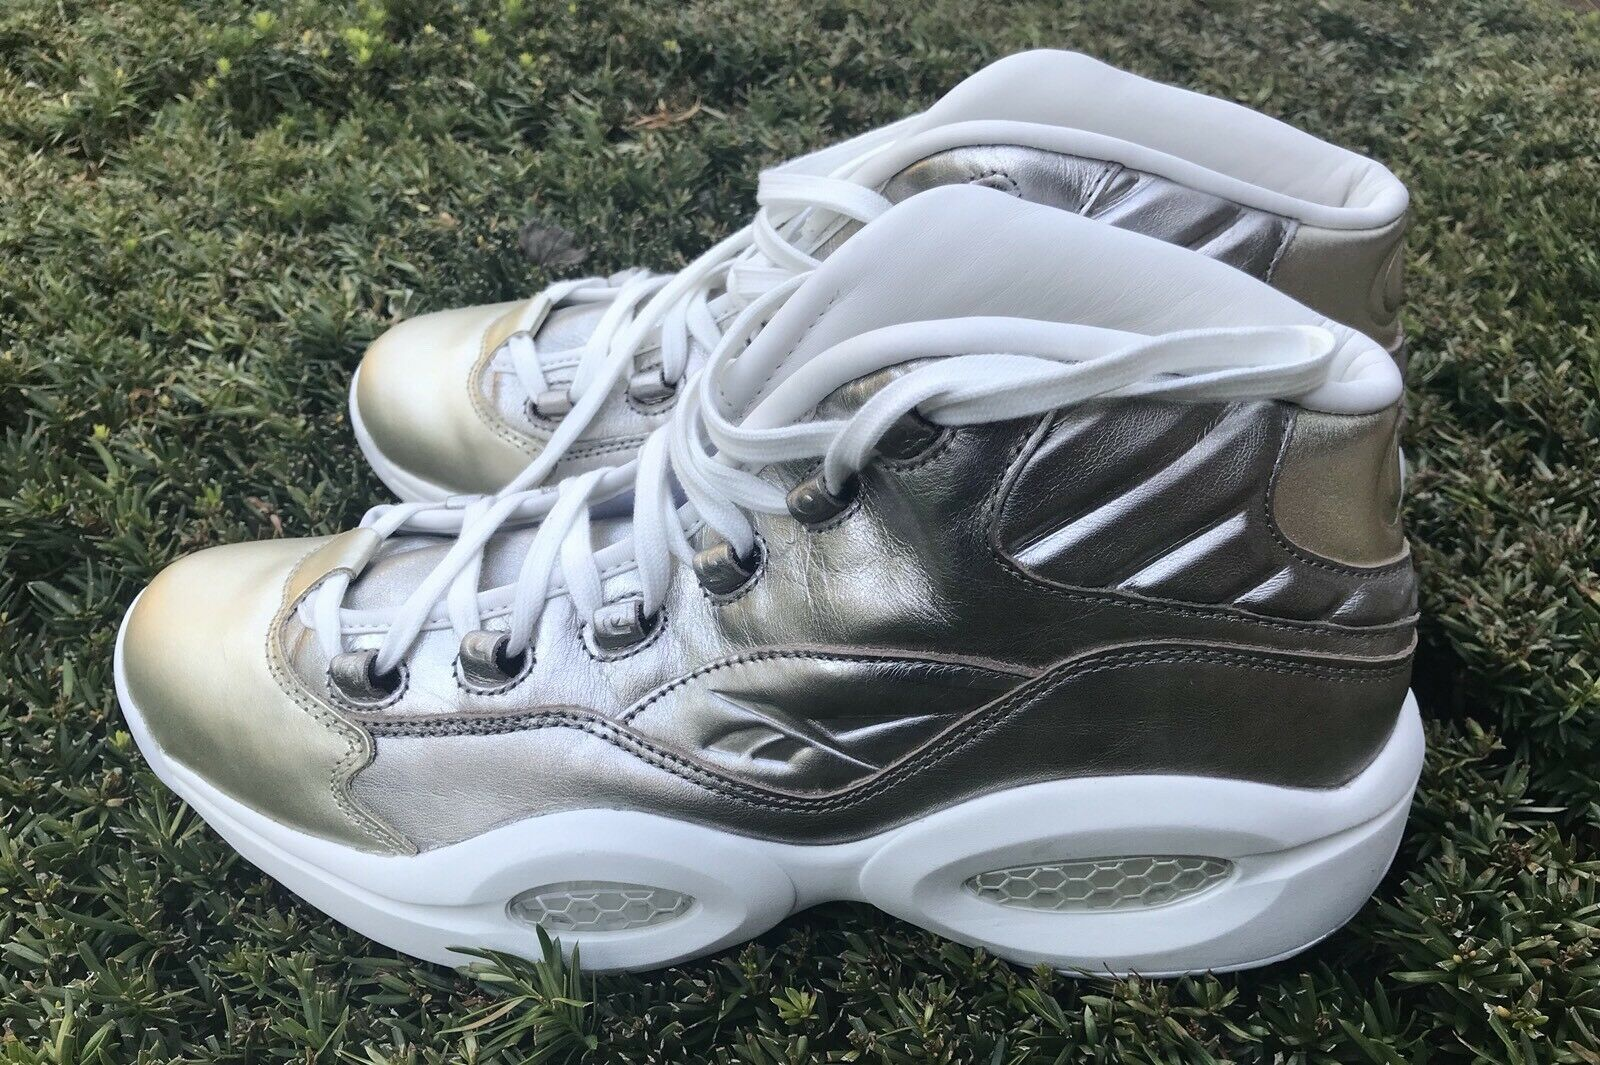 REEBOK QUESTION MID CELEBRATE IVERSON DS SZ 7 US HALL OF FAME 115 PAIRS NEW